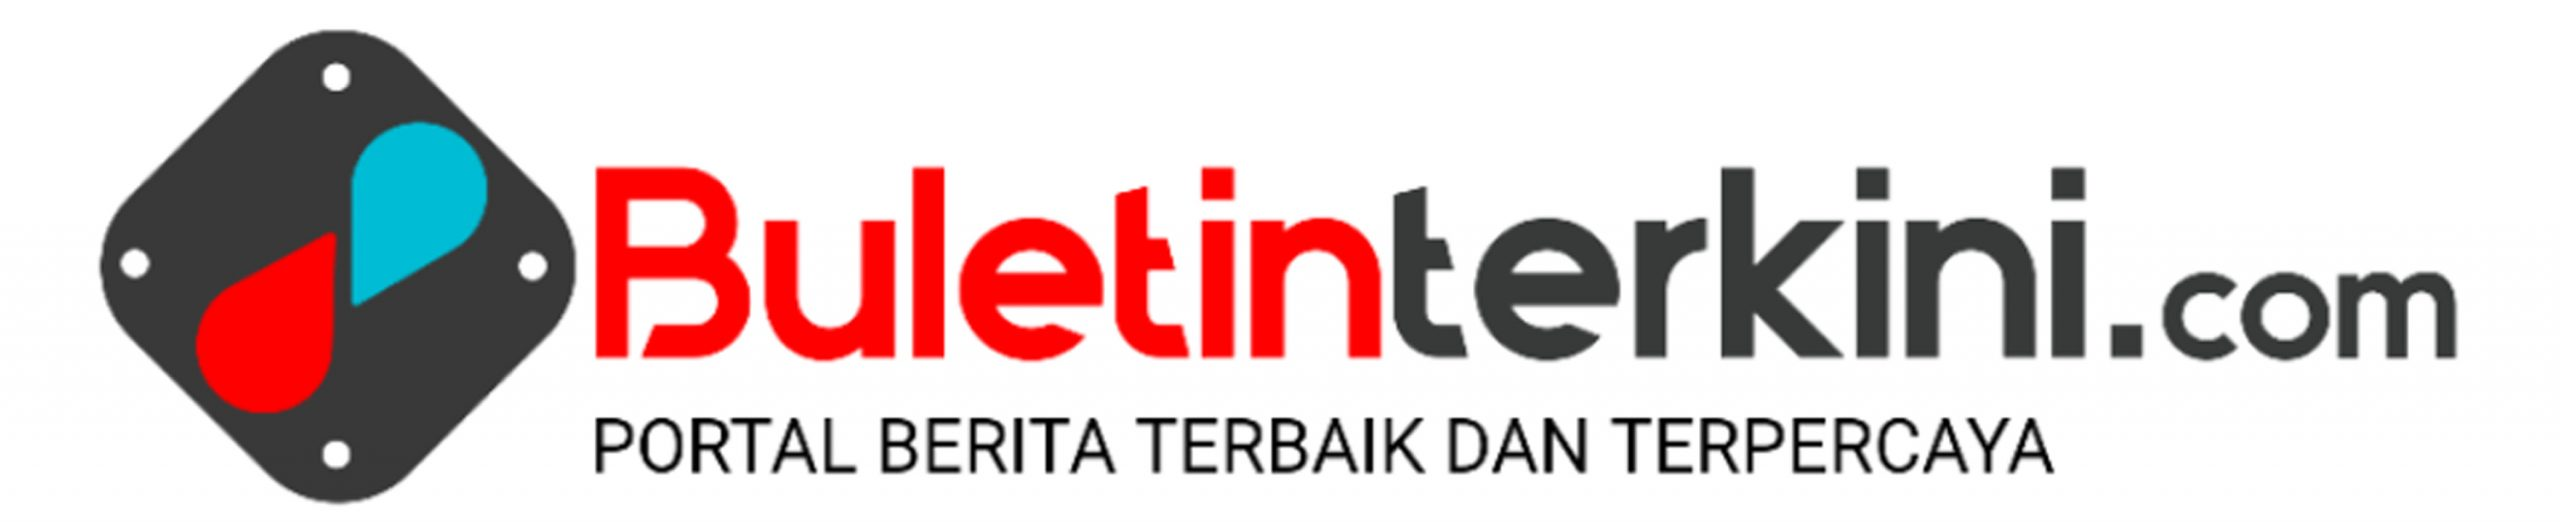 BULETINTERKINI.COM